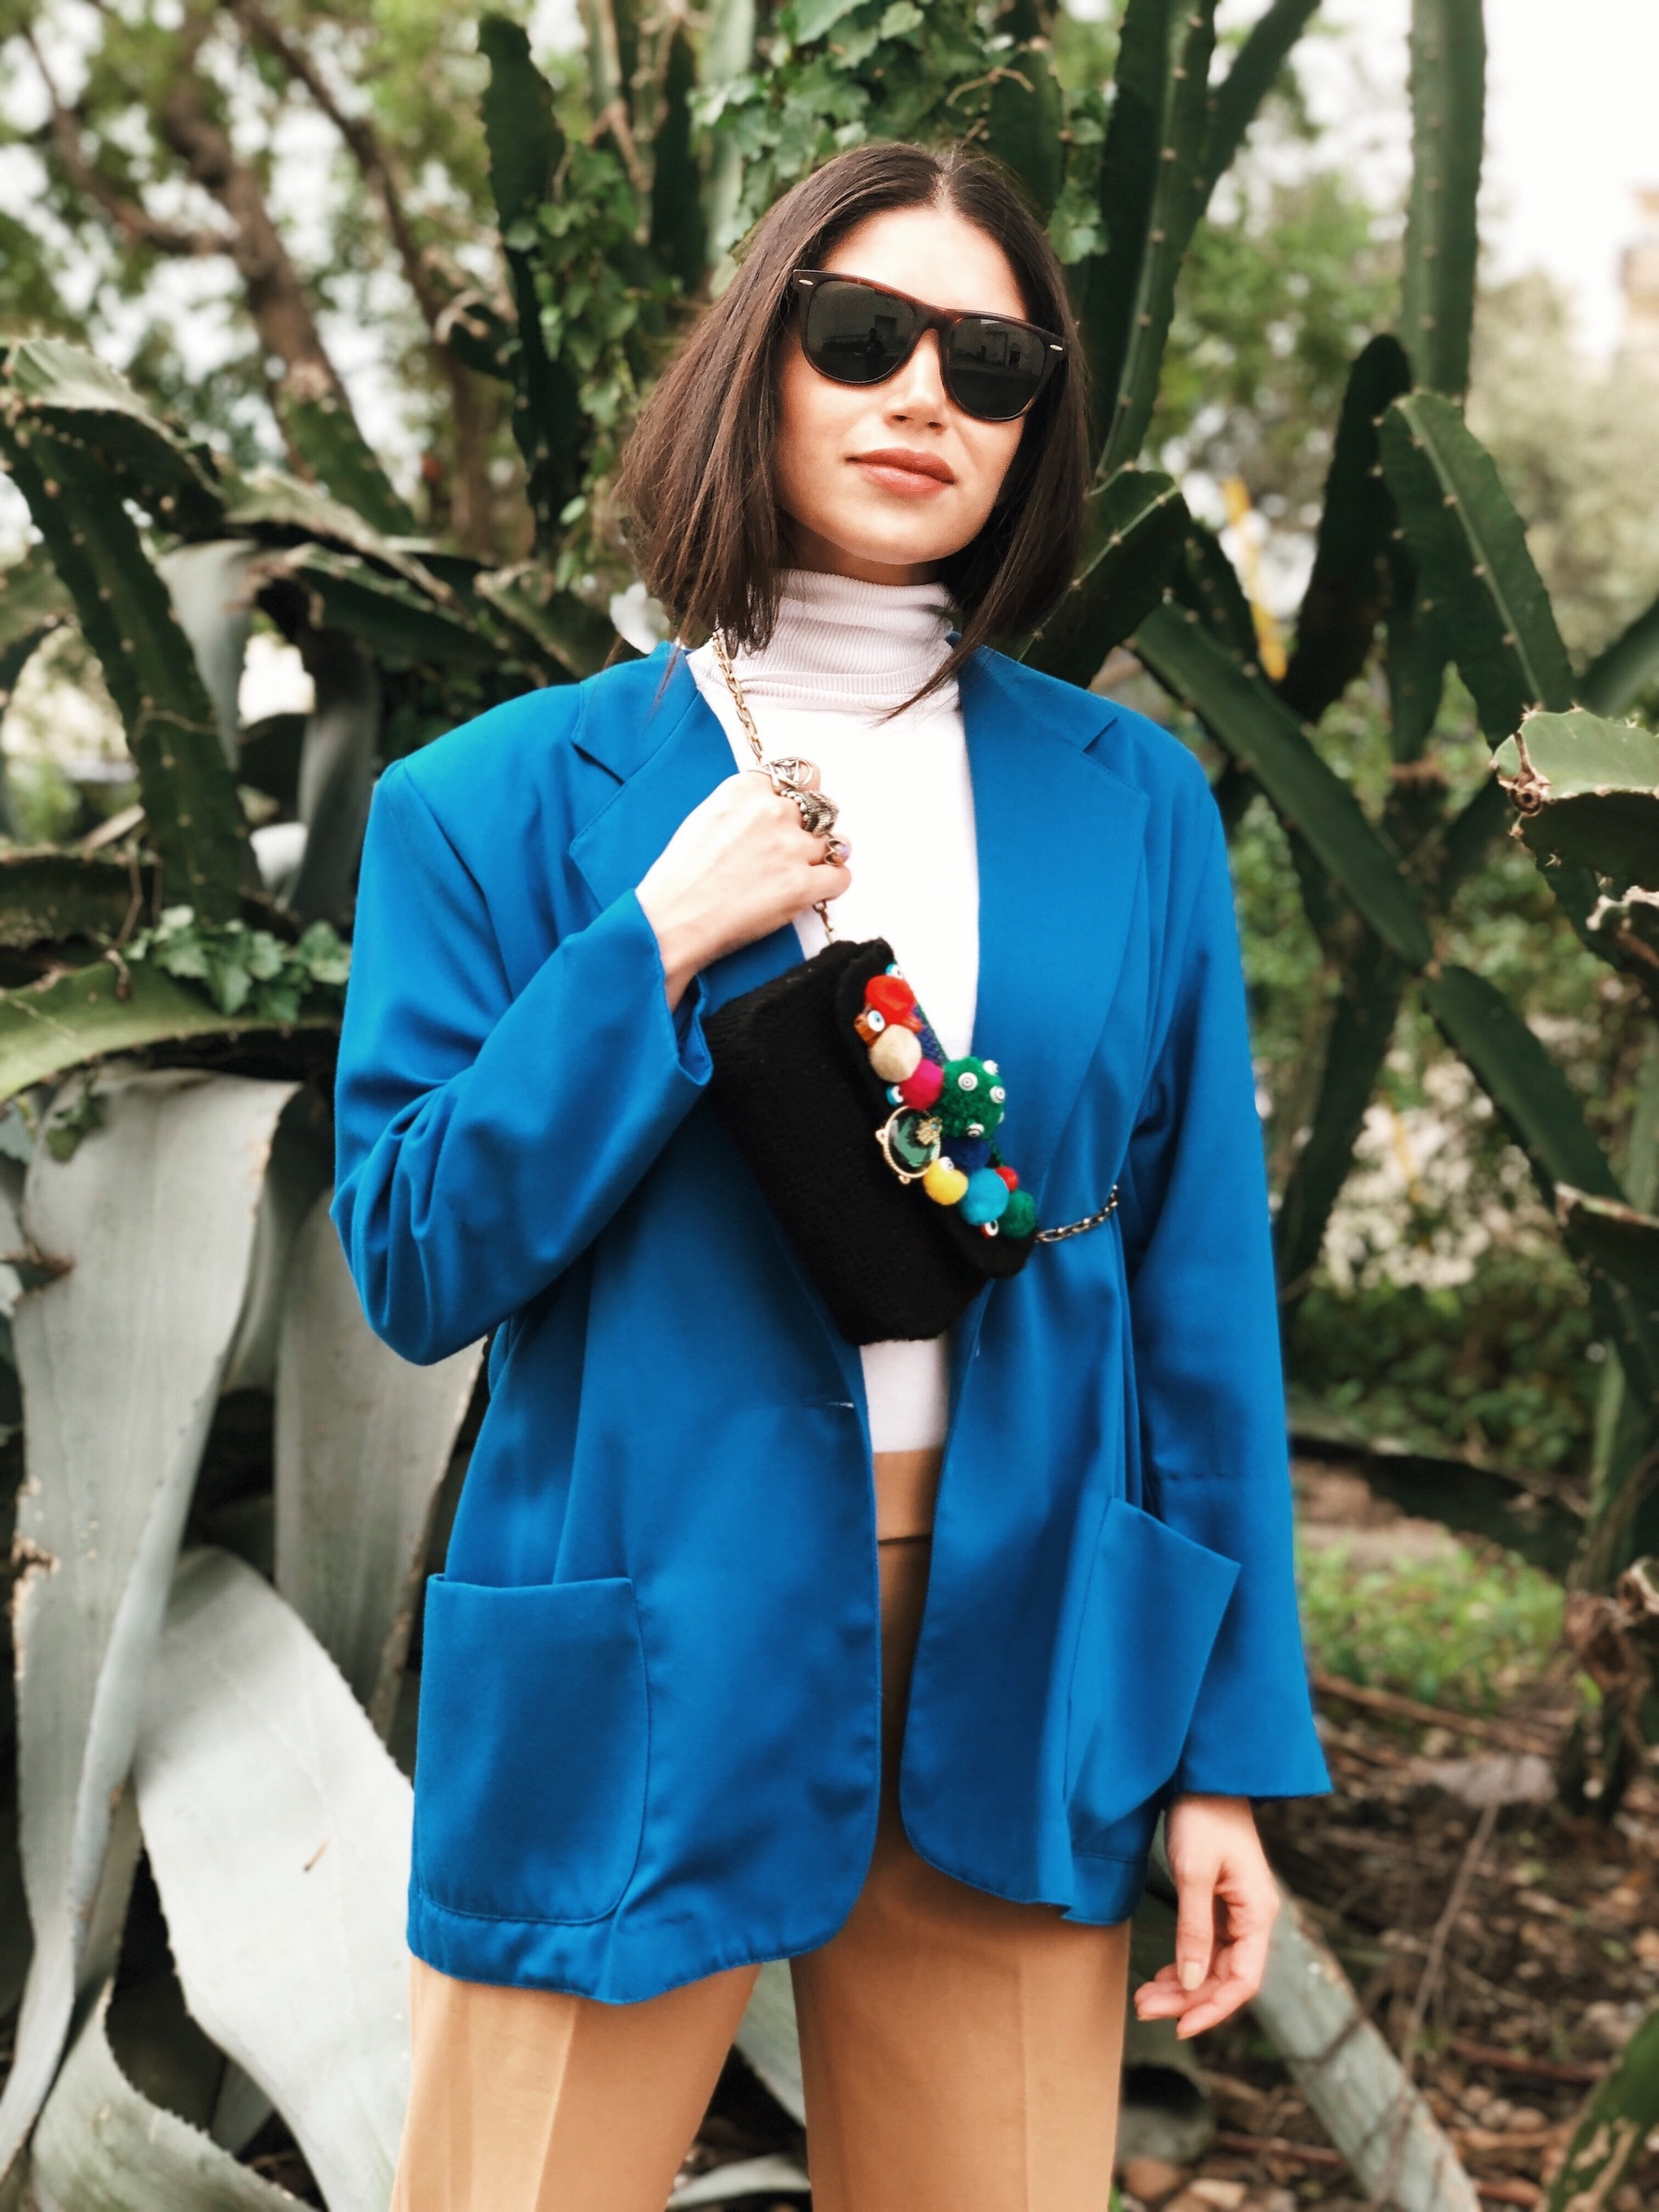 Upcycled pom pom bag and vintage outfit - A Week Of Cruelty-Free Outfits & Vegan Beauty With Jessica Salazar From All There August on The Good Trade